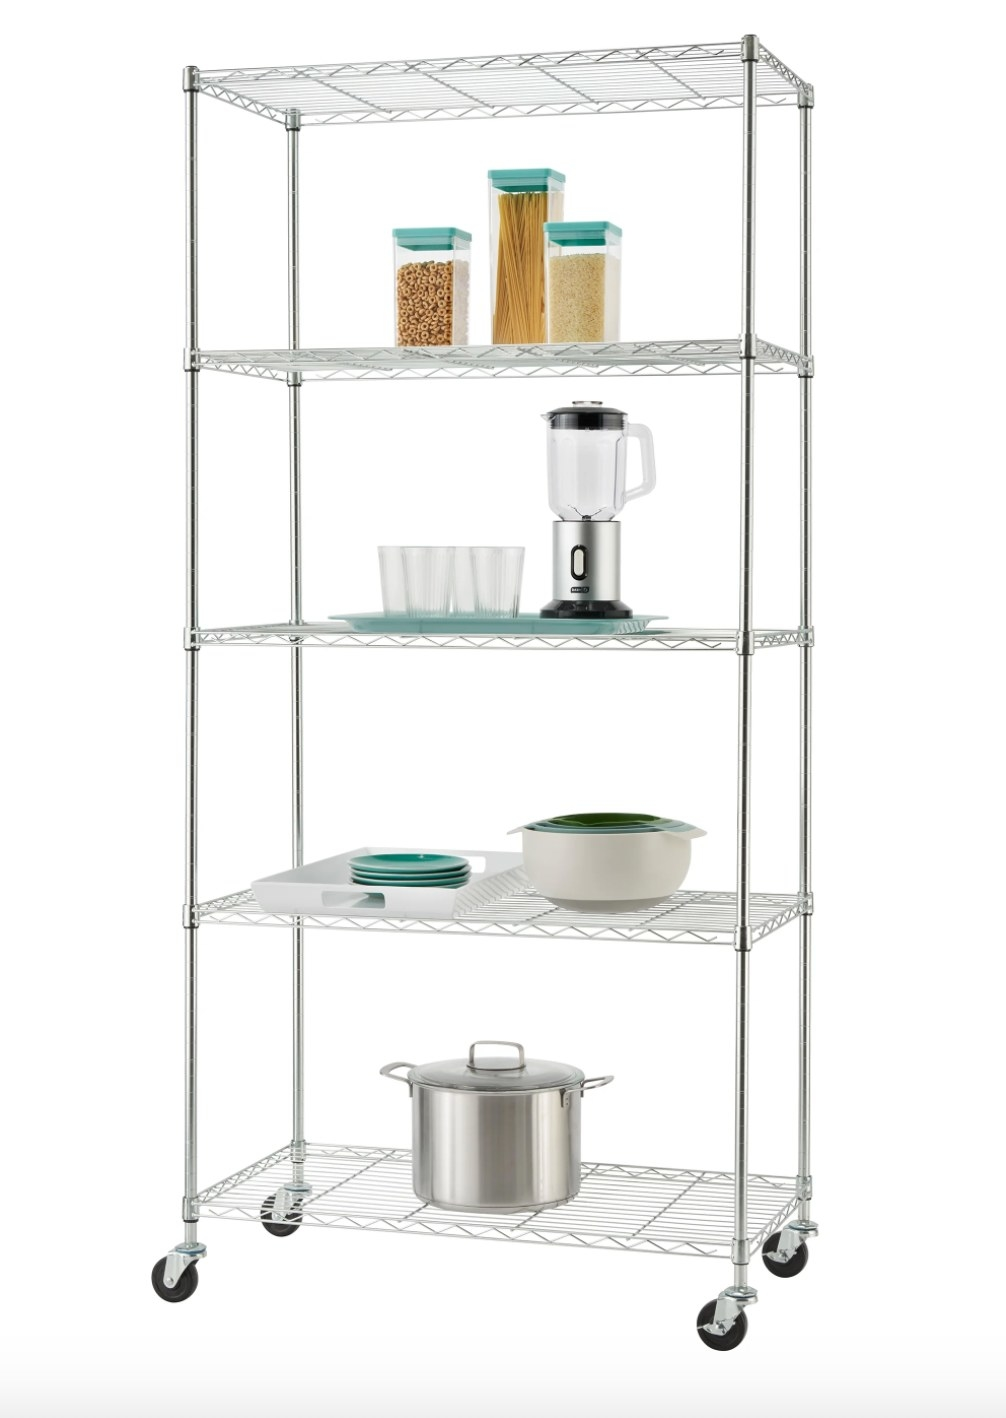 The five-tier wire rack